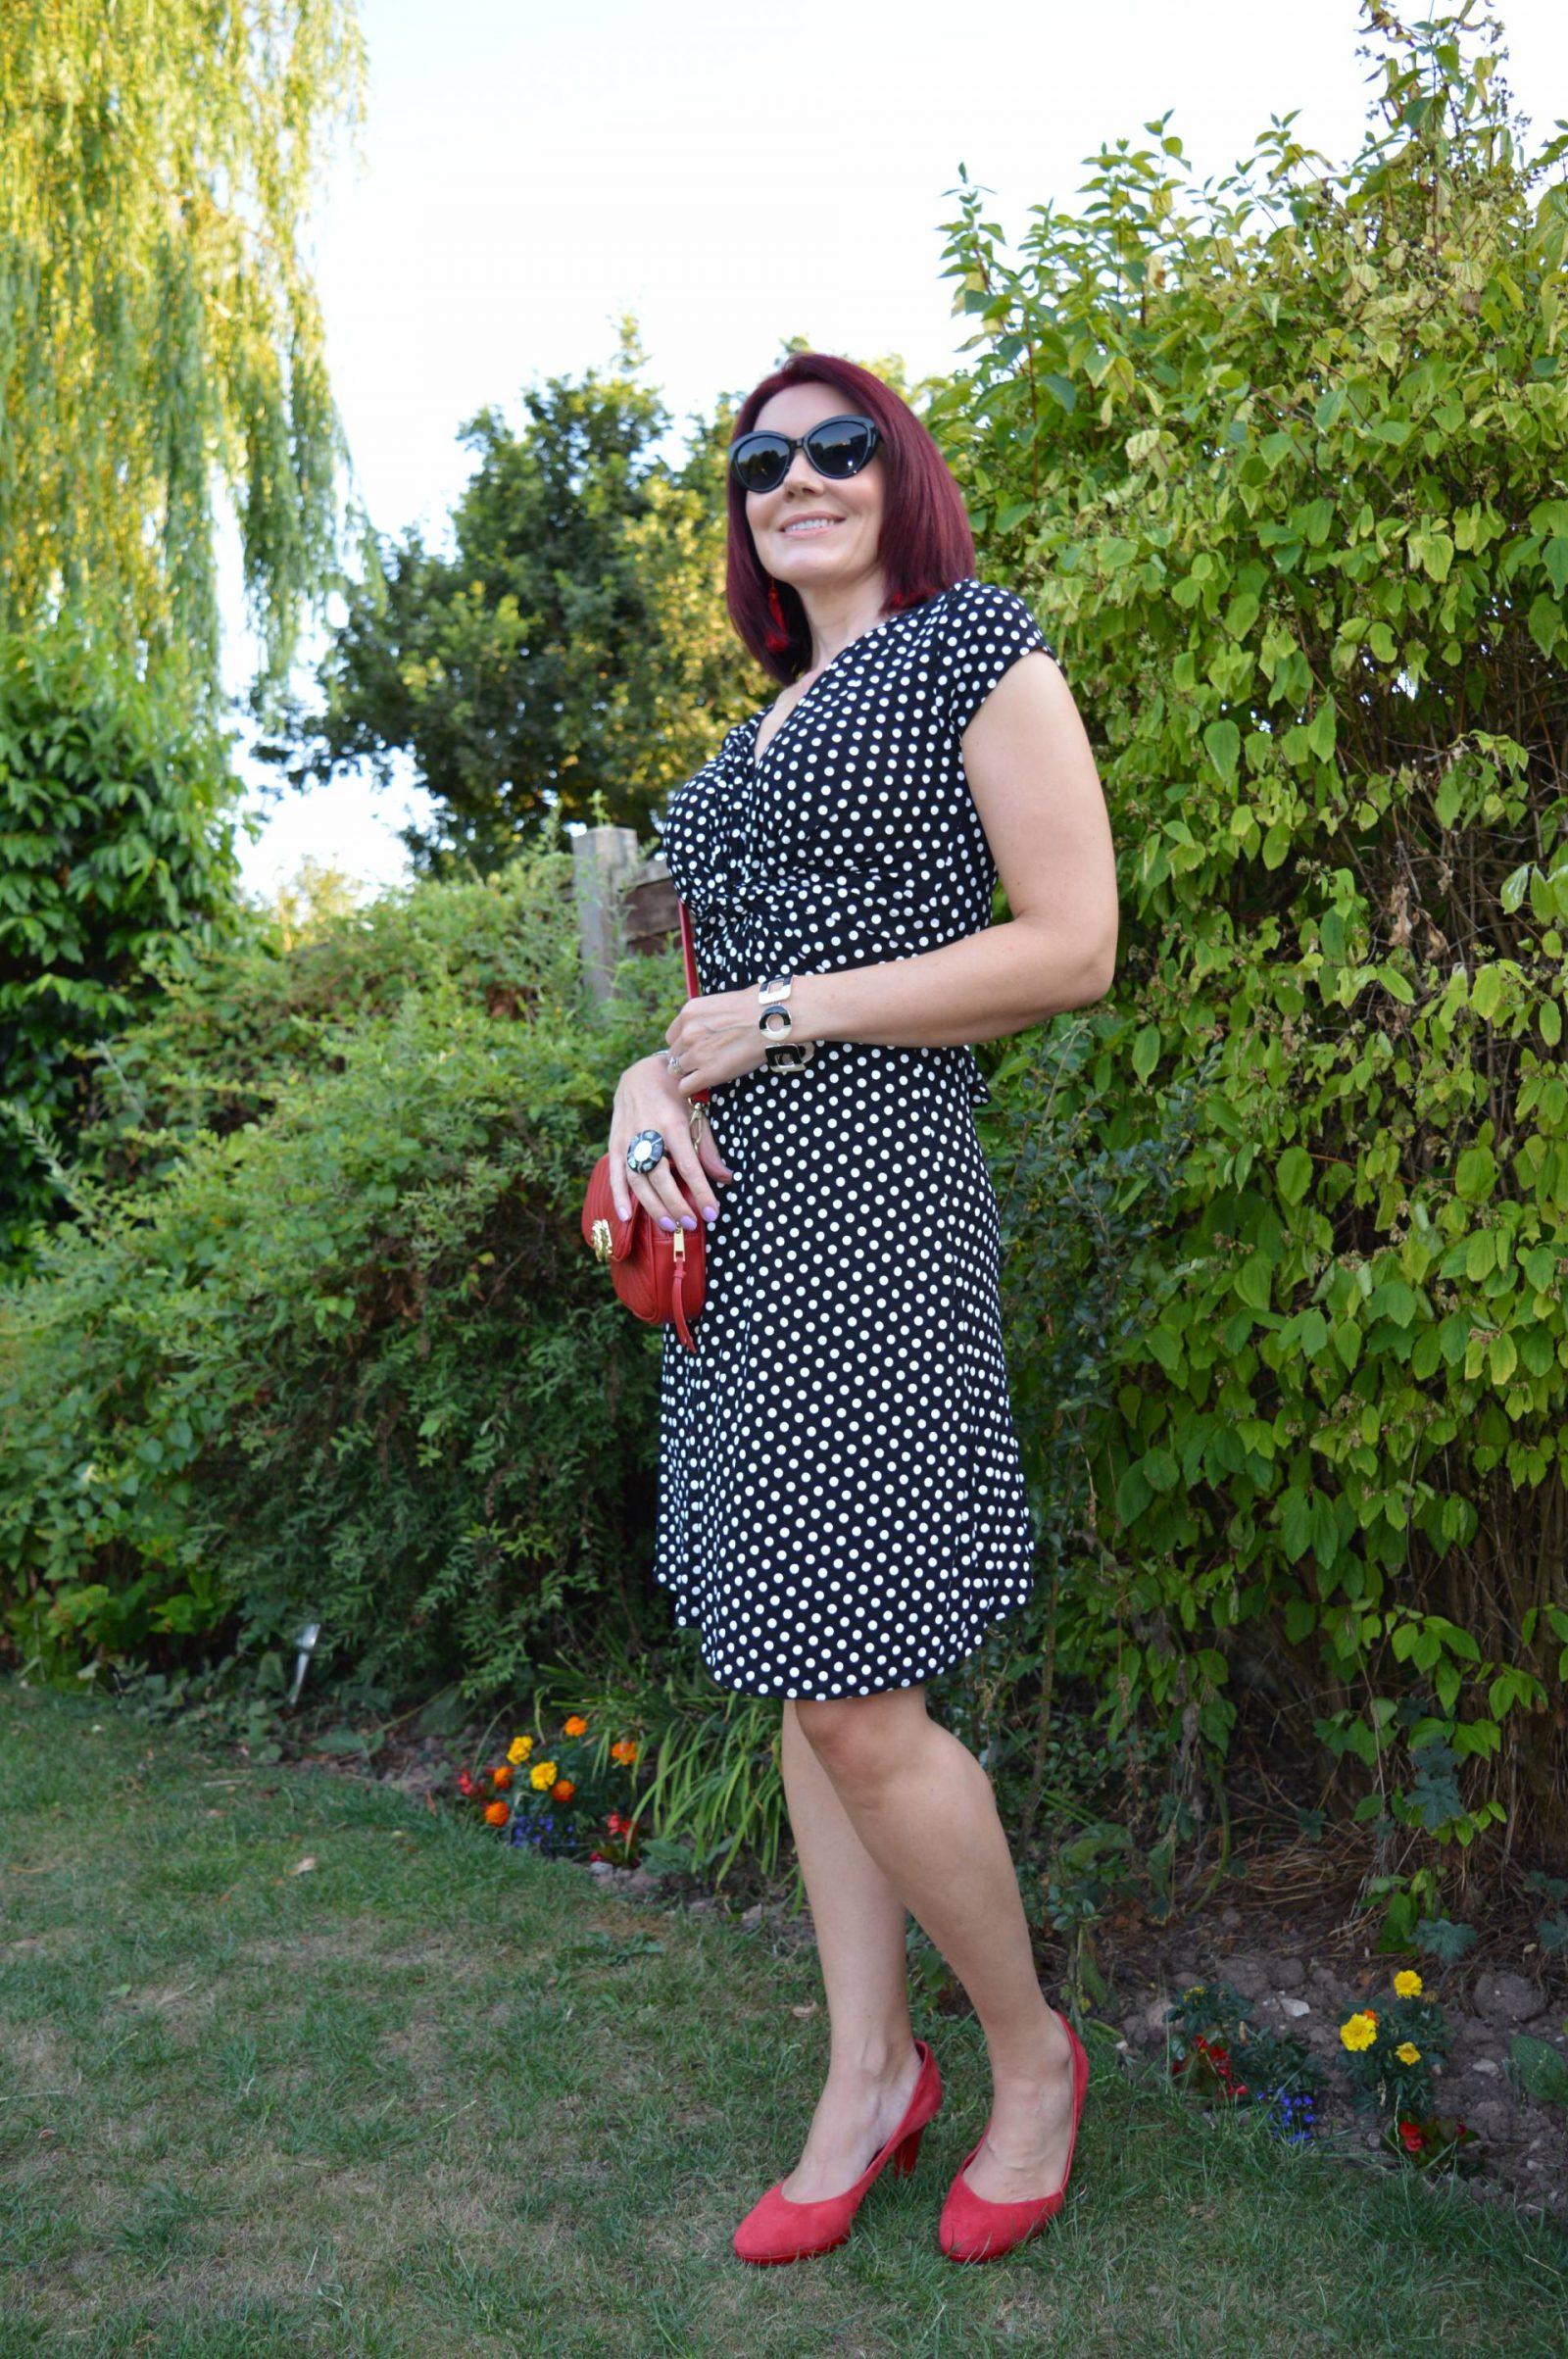 Krisp Black and white polka dot dress with red accessories